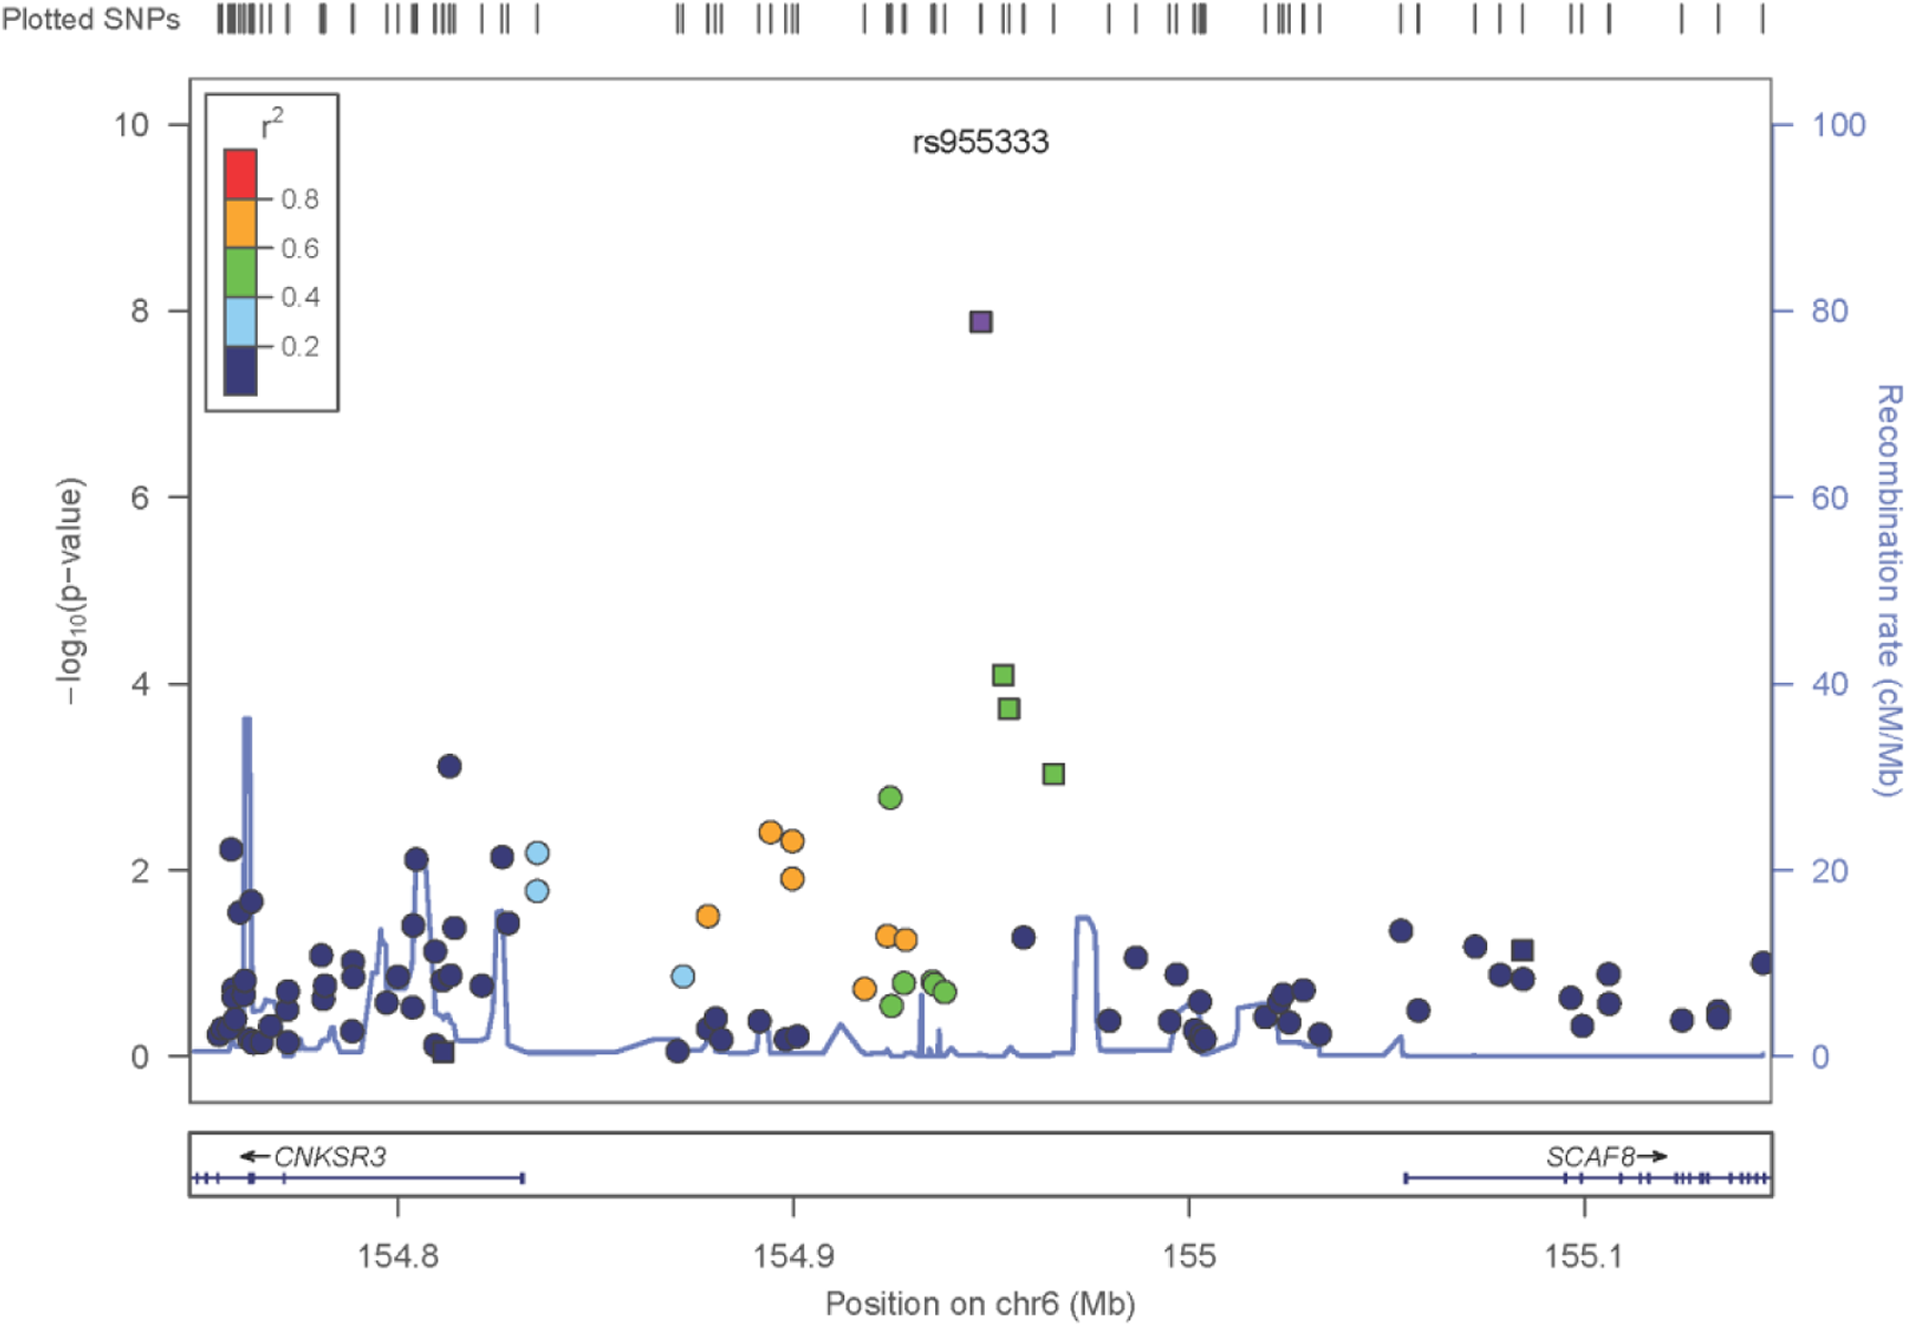 Zoom plot of the <i>SCAF8</i> gene region (trans-ancestry meta-analysis across Discovery and Replication samples).